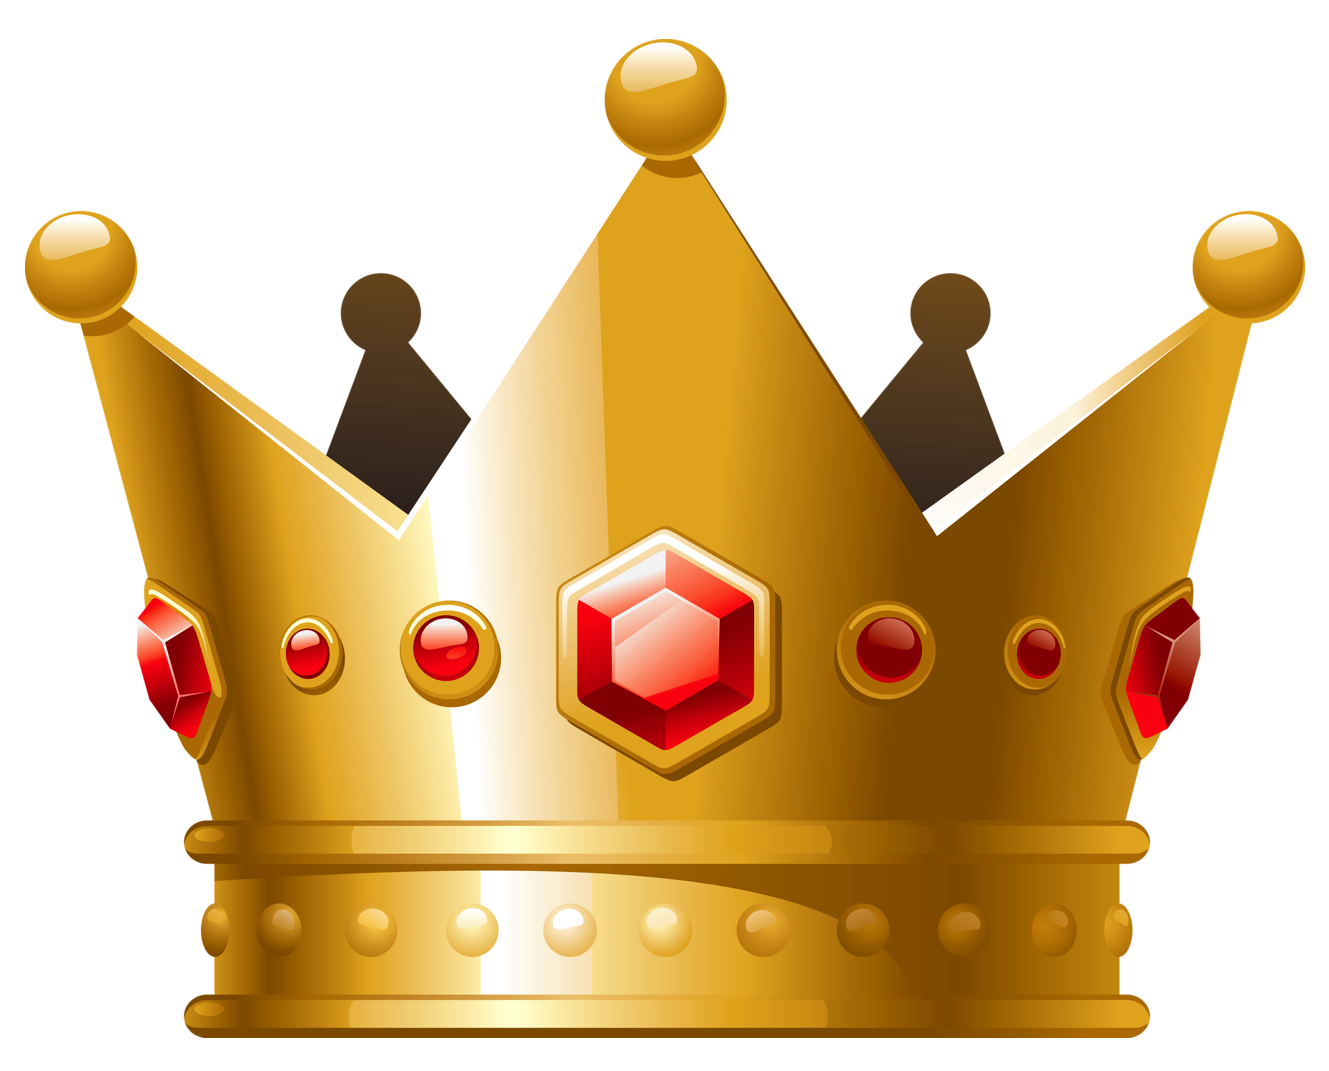 Burger king crown clipart clip art transparent stock Crown transparent crown image with transparent background 2 | Crowns ... clip art transparent stock